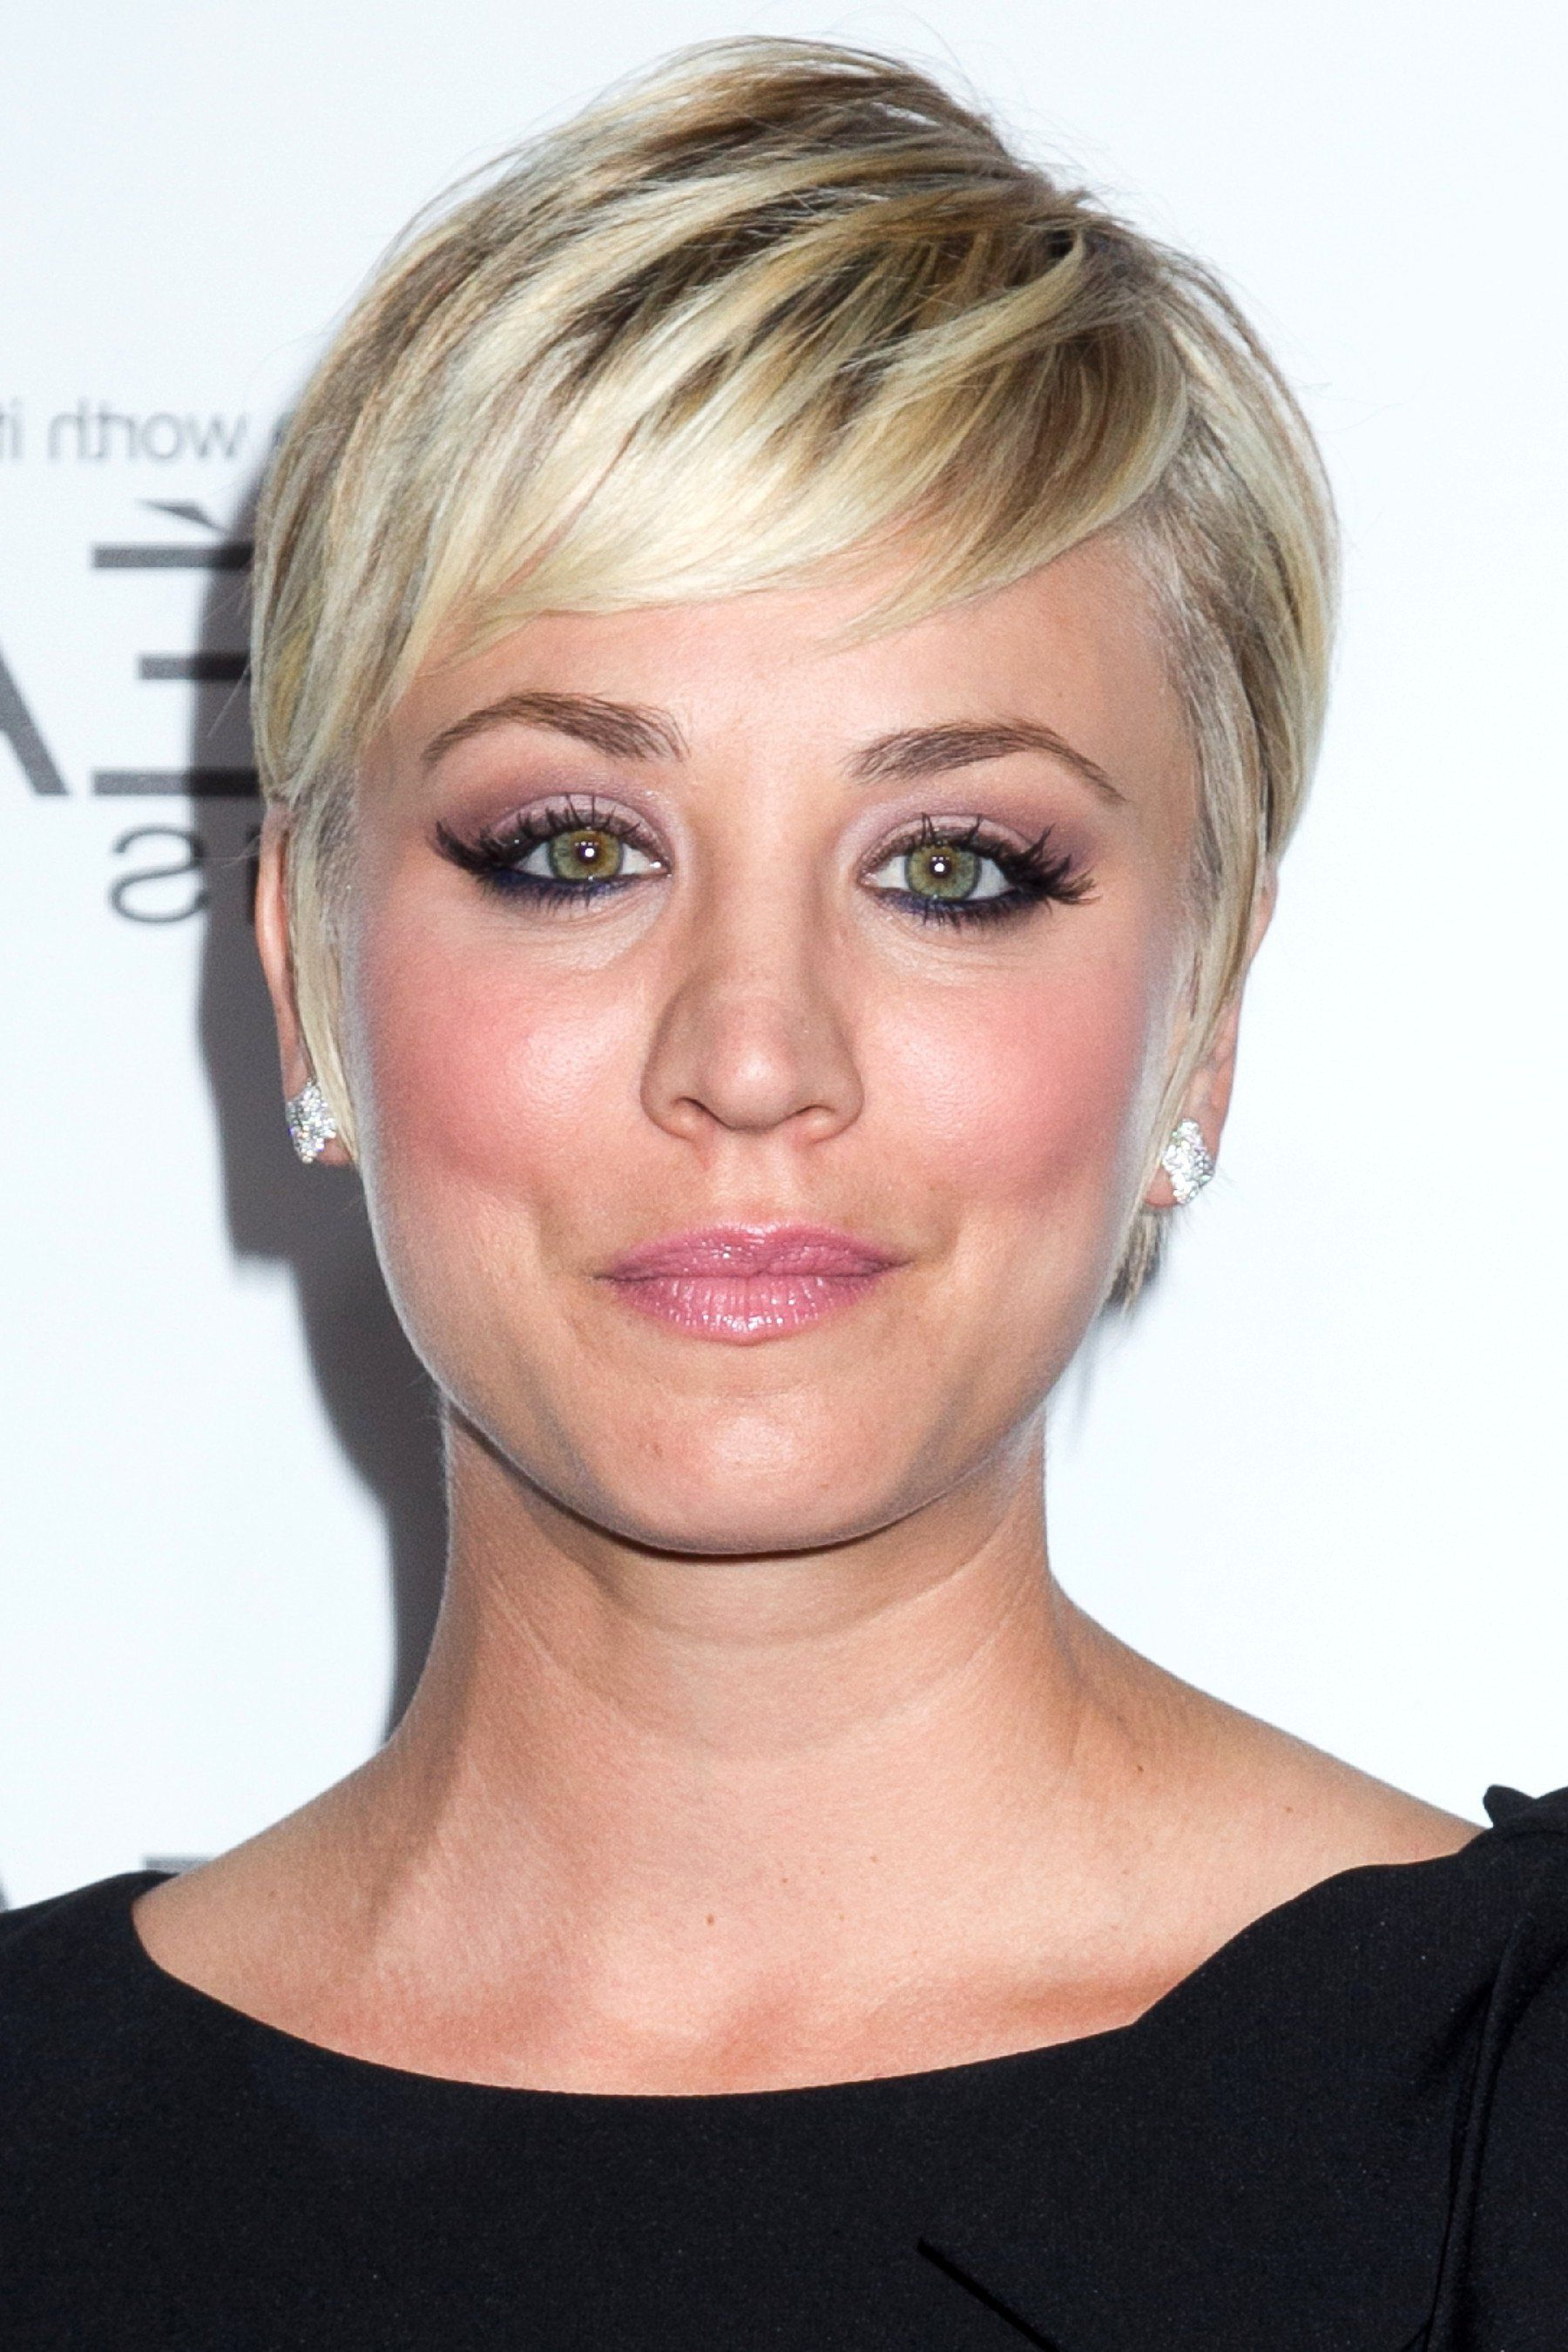 Kaley Cuoco | Short Hairstyles In 2018 | Pinterest | Kaley Cuoco Inside Kaley Cuoco Short Hairstyles (View 6 of 25)